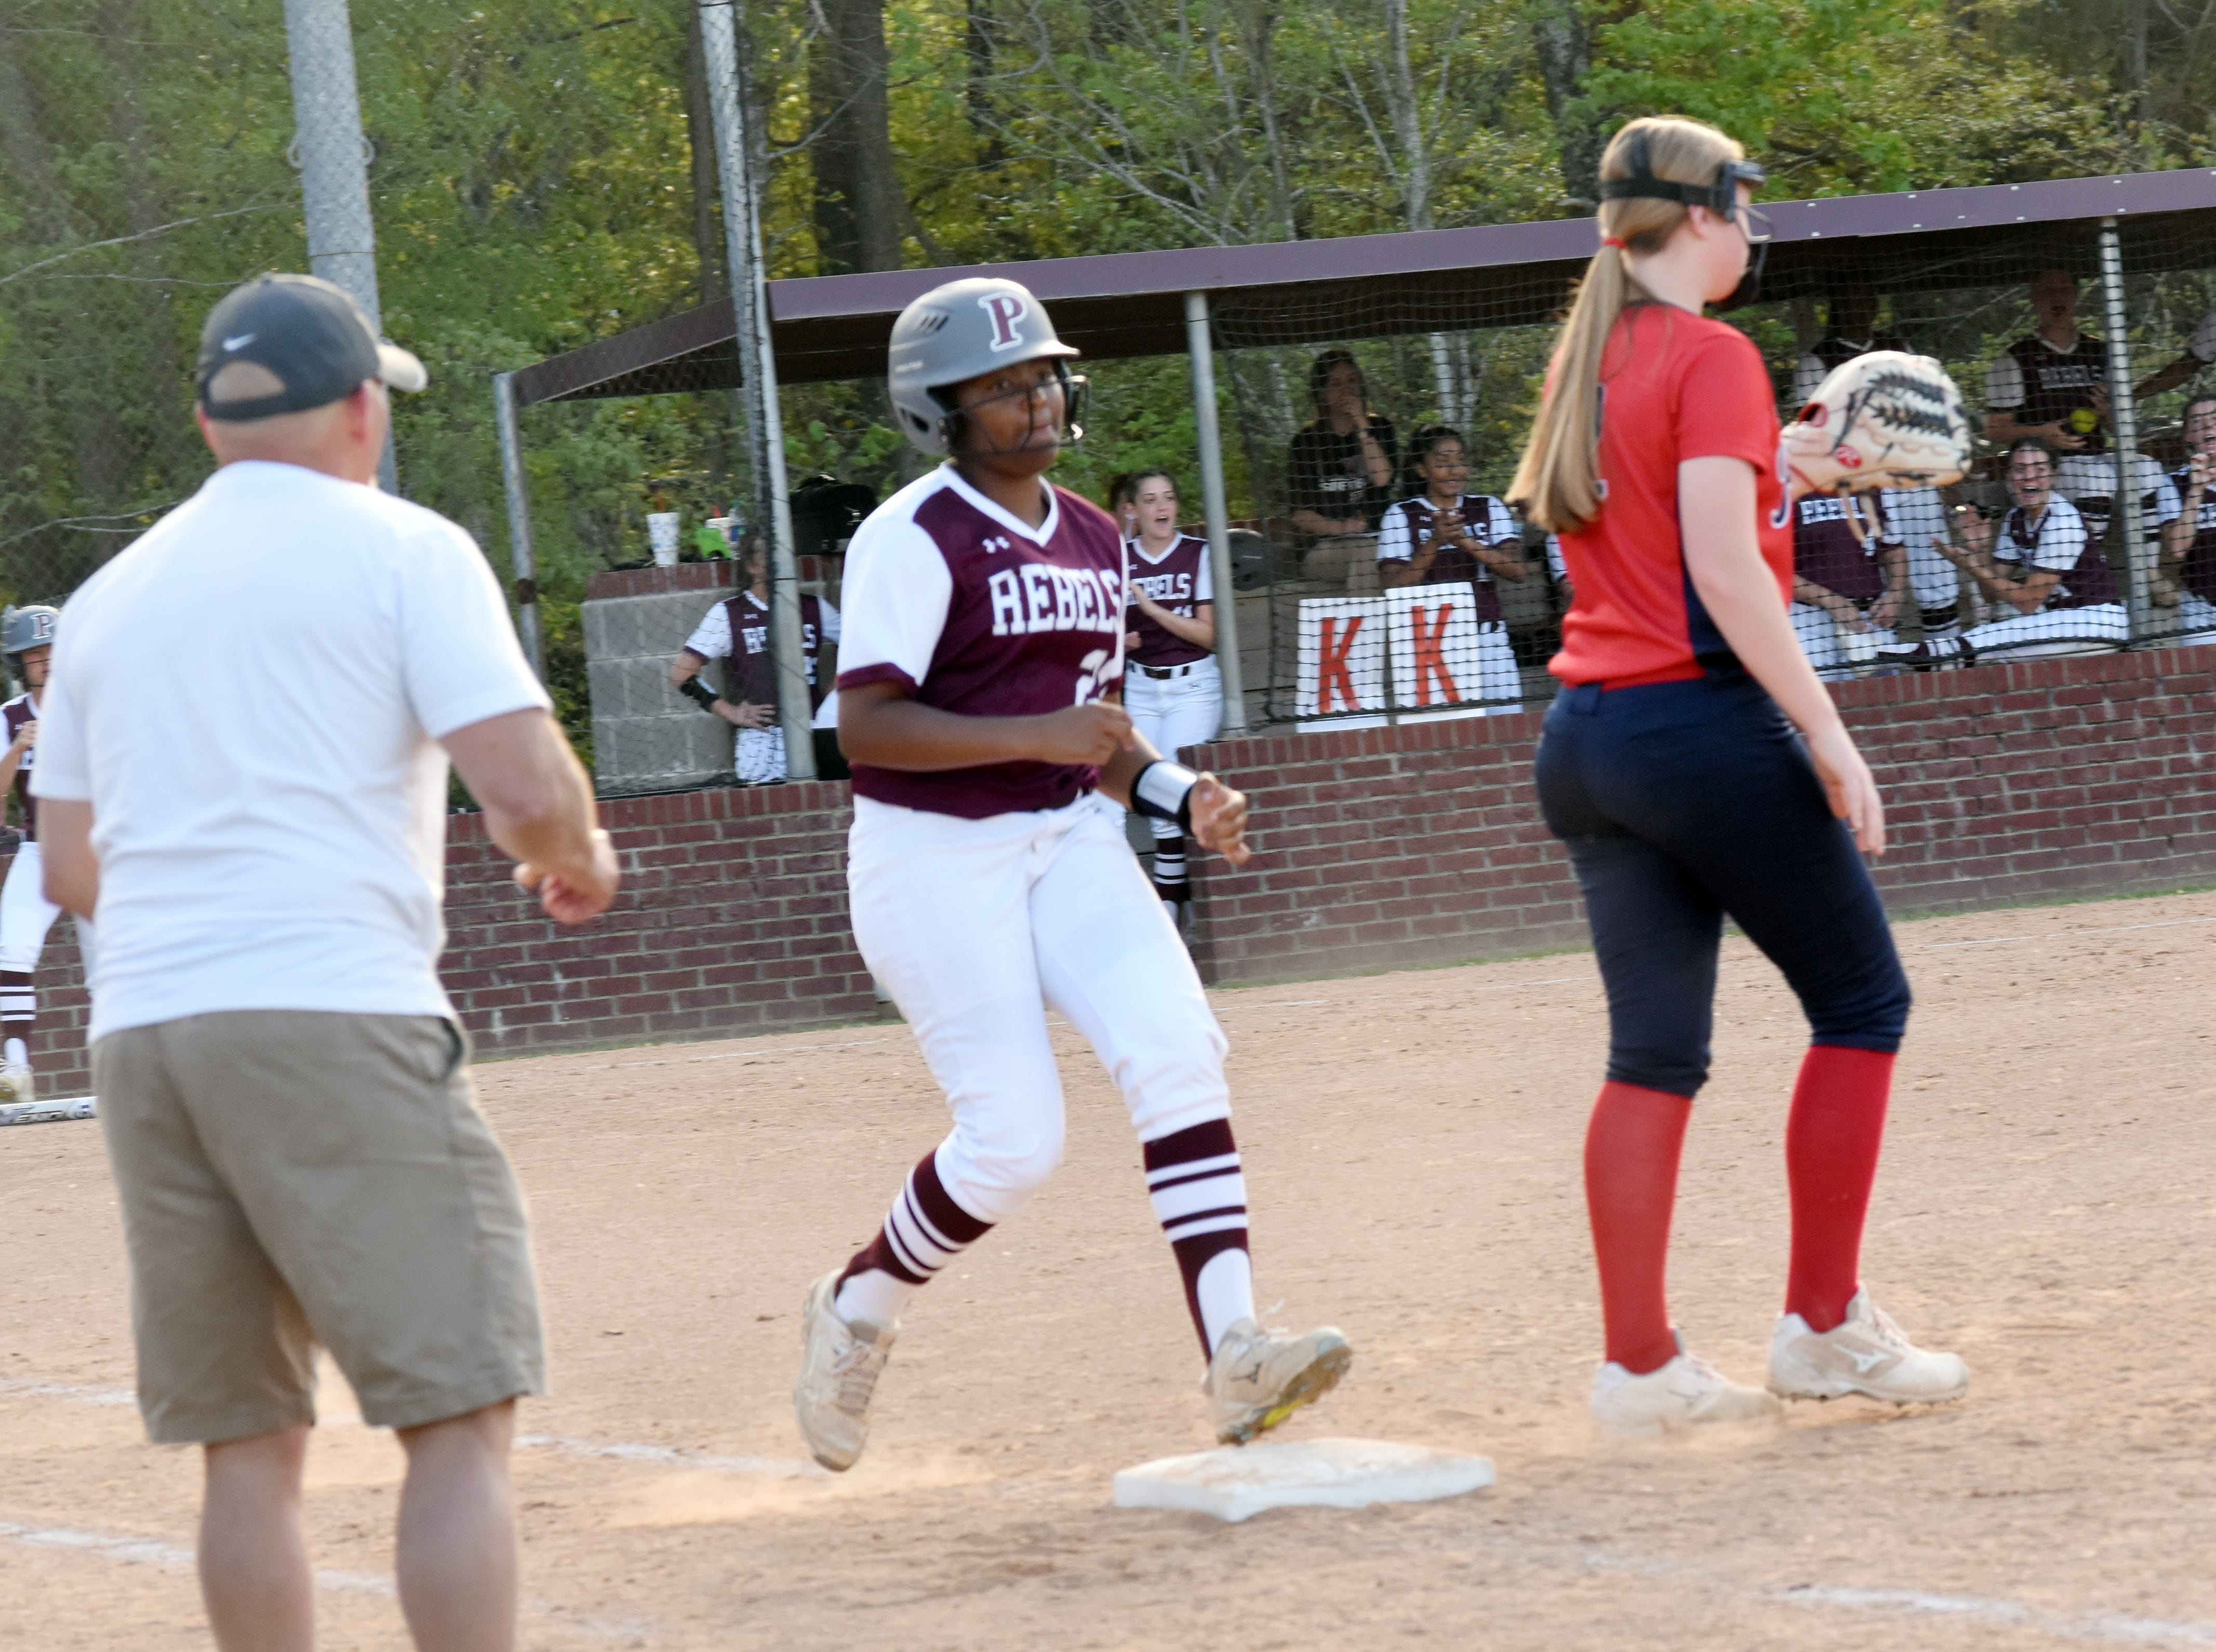 The Pineville High School Lady Rebels hosted the West Monroe High School Lady Rebels Thursday, March 28, 2019. West Monroe won 11-2.